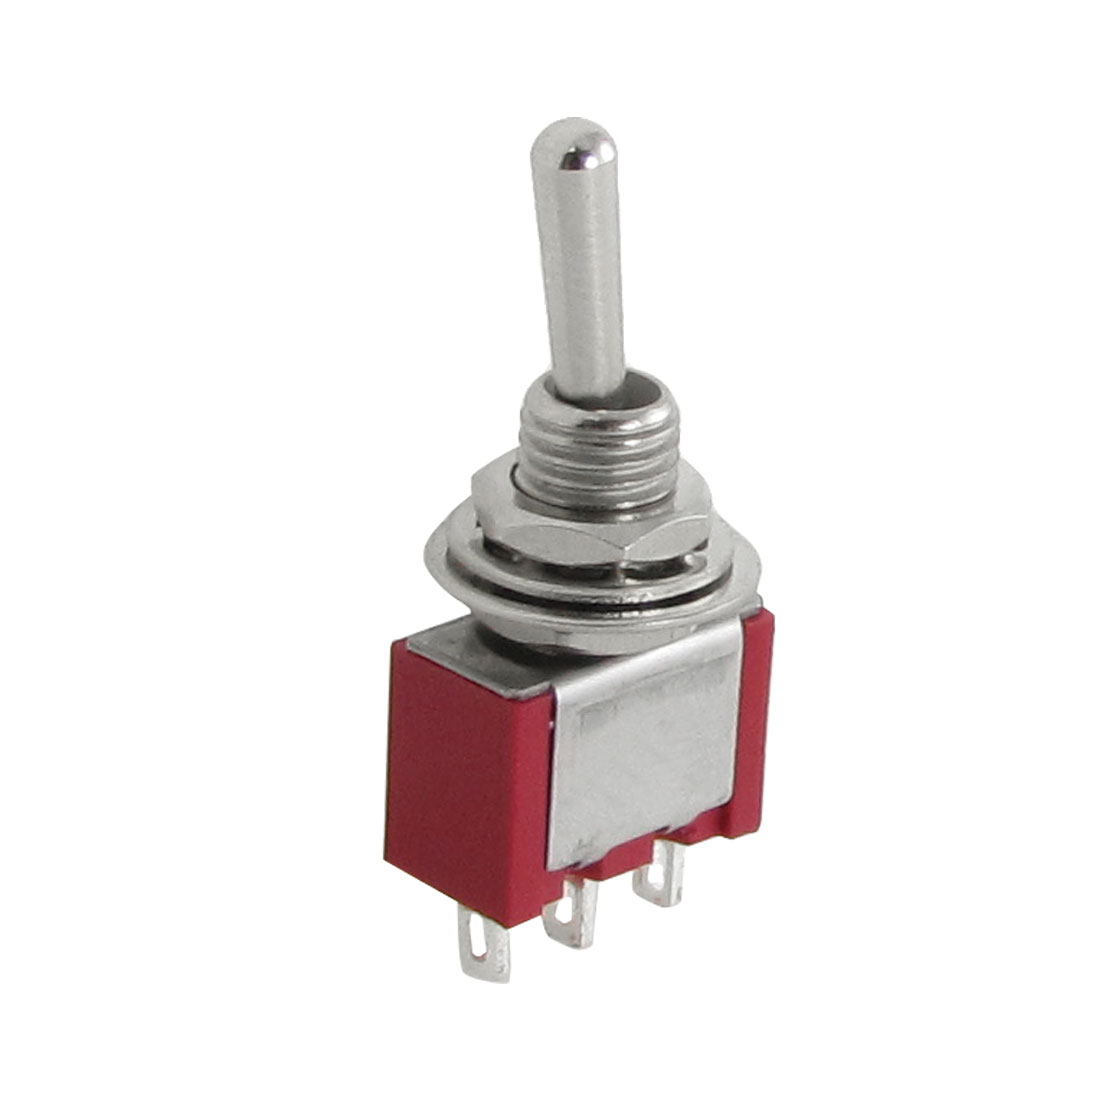 1P2T ON/OFF/ON 3 Position Toggle Switch 2A/250VAC 5A/120VAC 10 Pcs